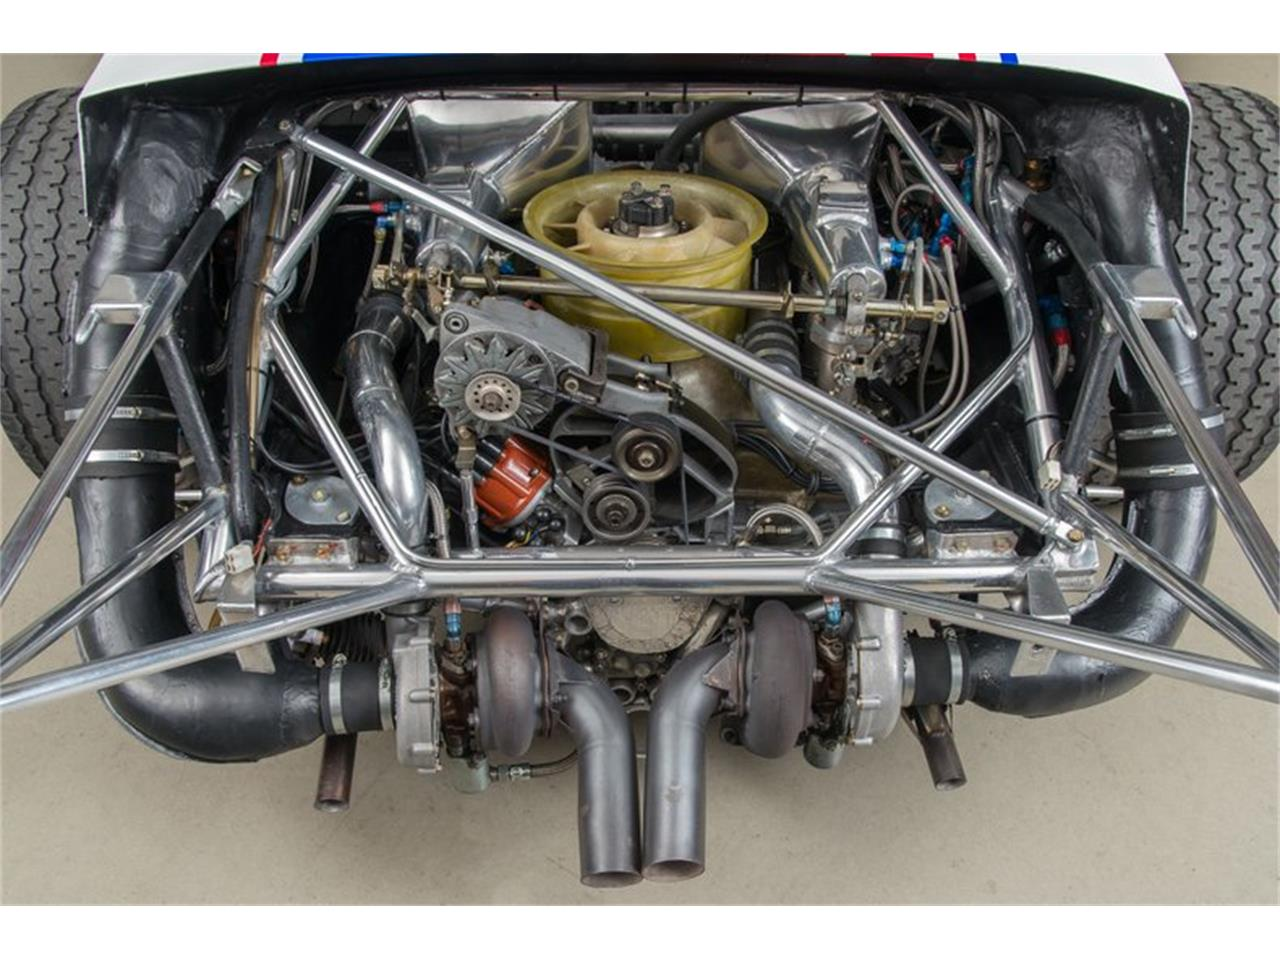 1979 Joest Porsche 935 for sale in Scotts Valley, CA – photo 37